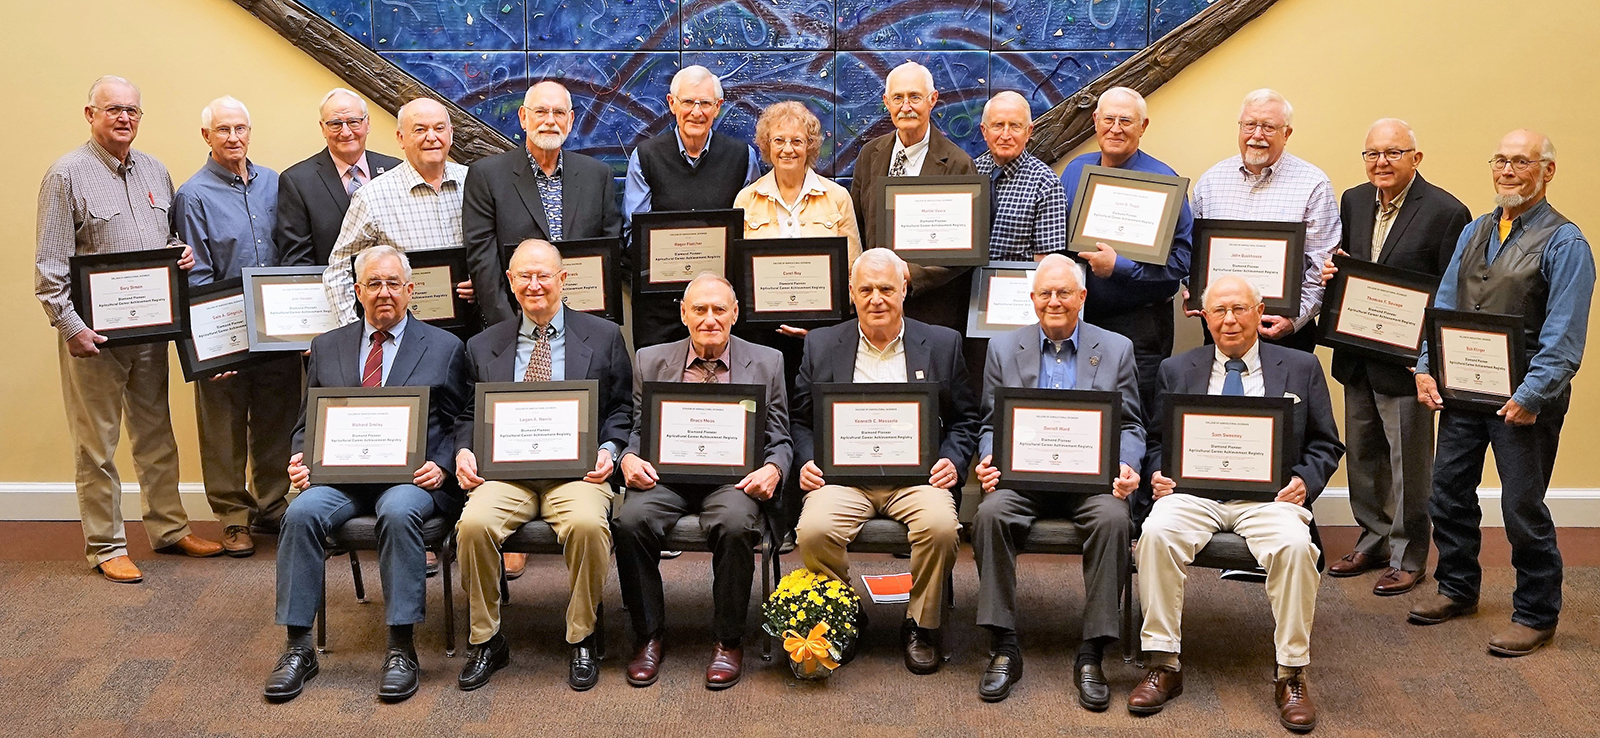 From top row, left to right: Gary Simon, Gale Gingrich, Jim Heater, Jack Long, Carl Schreck, Roger Fletcher, Carol Roy, Martin Vavra, Clint Jacks, Lynn Trupp, John Buckhouse, Thomas Savage, Bob Klinger From bottom row, left to right: Richard Smiley, Logan